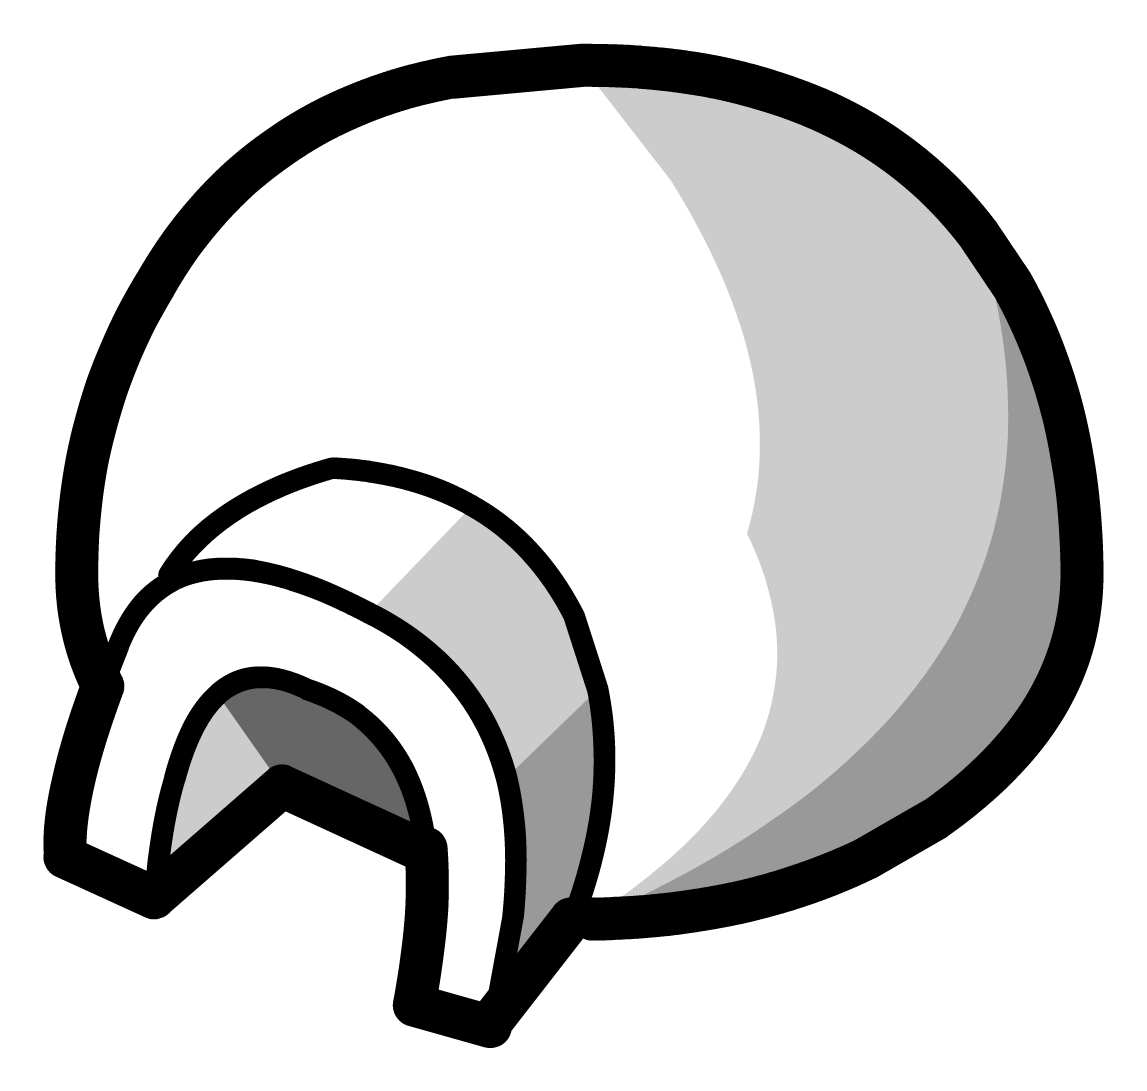 Igloo clipart man. Image upgrades icon png